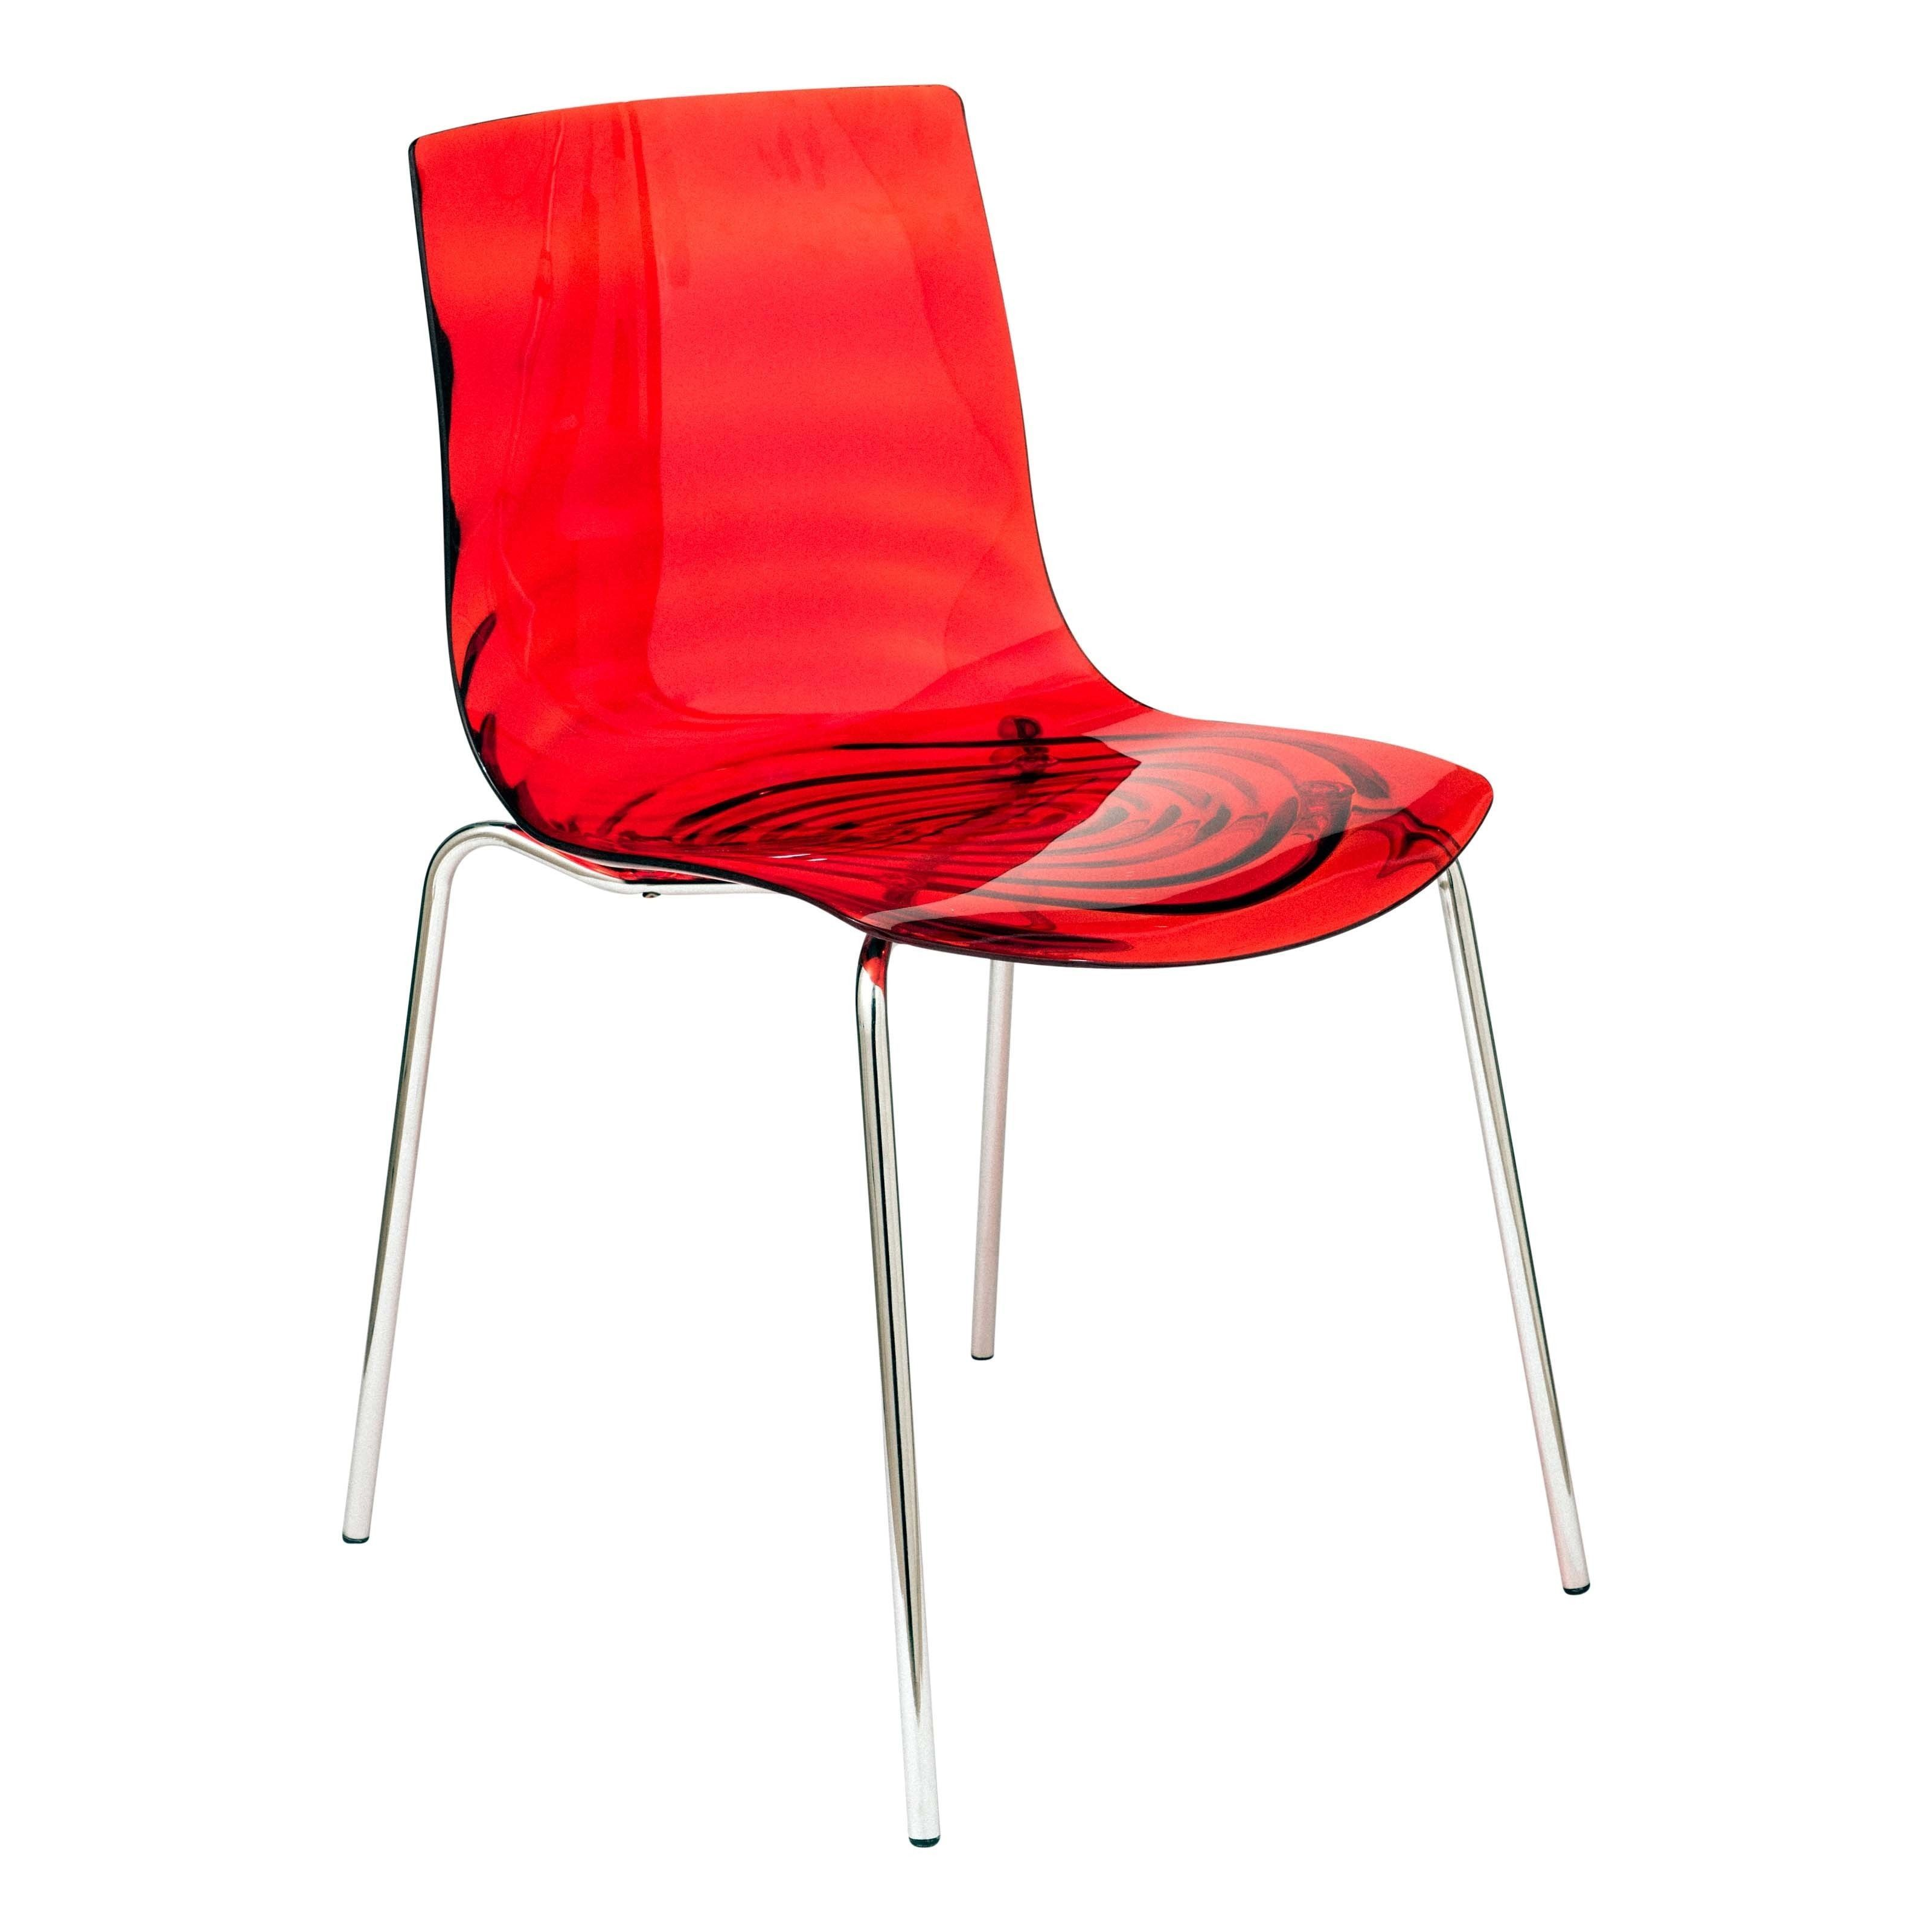 Red modern chairs - Leisuremod Modern Astor Polycarbonate Transparent Red Dining Chair By Leisuremod